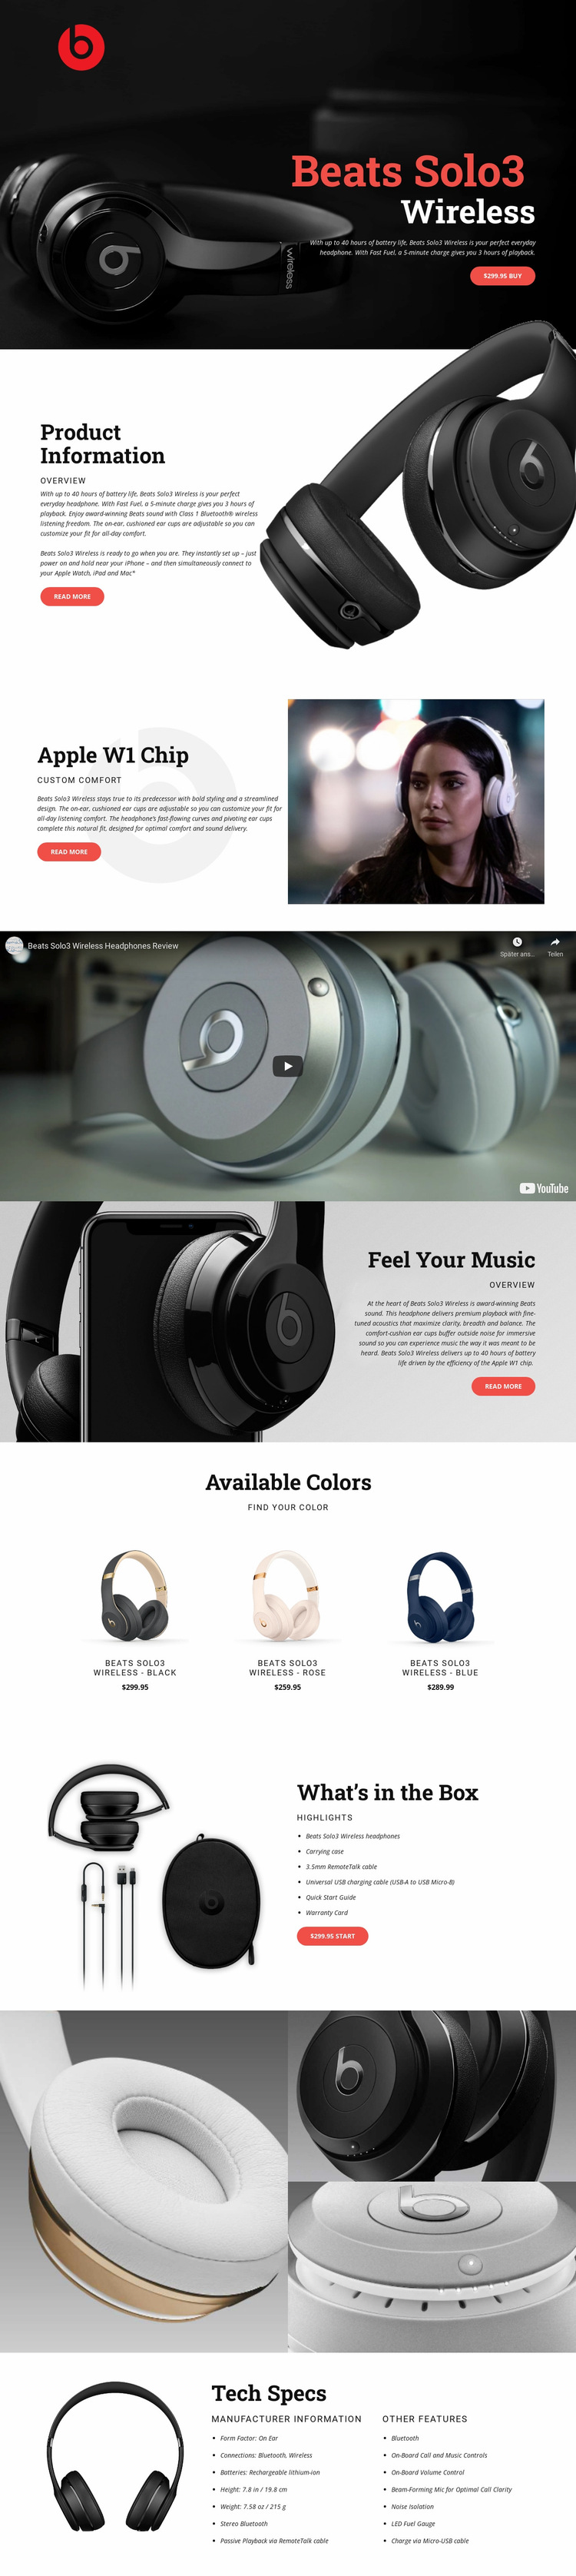 Outstanding quality of music Website Builder